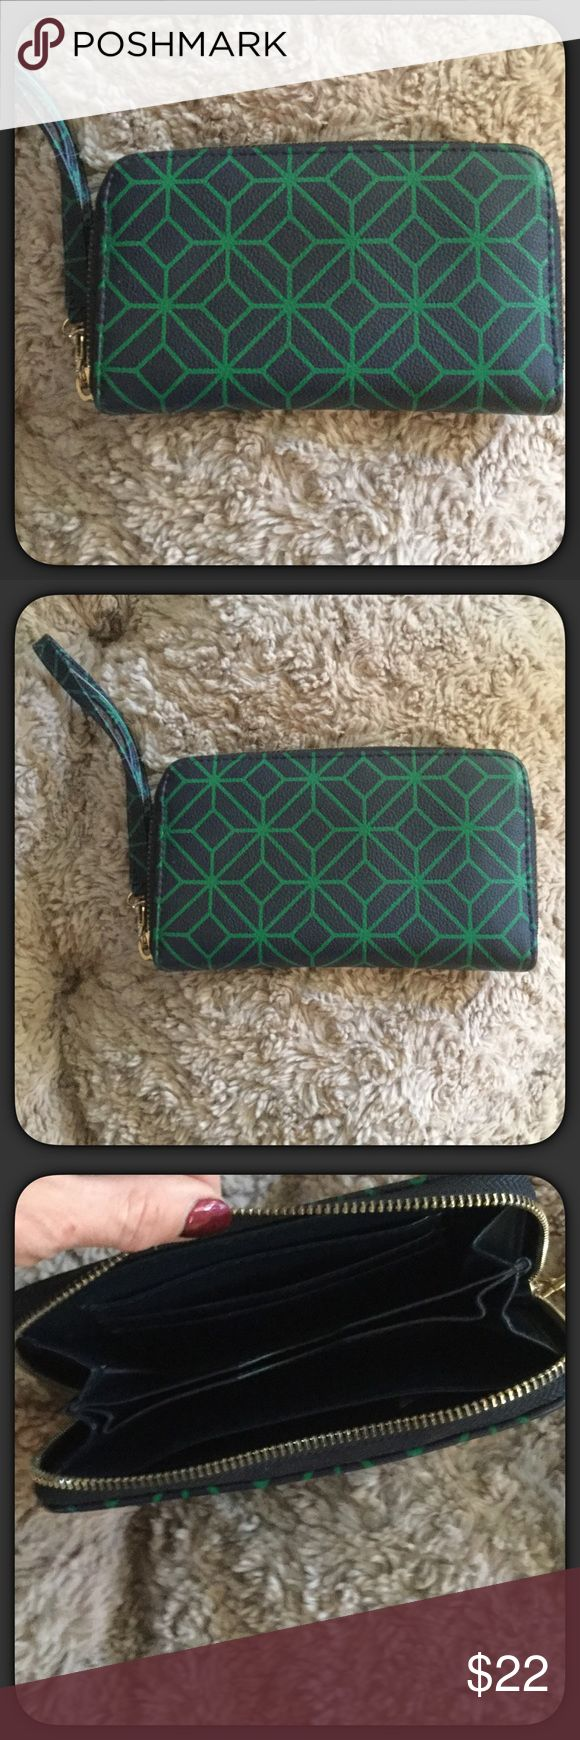 """🆕Wristlet - Faux Leather - Navy & Green Navy blue and green geometric print wristlet. Wrist band can be taken off to use as a wallet. Faux pebbled leather (man made materials). Soft feeling. Inside is Navy blue with side pocket and slots for ID, etc. center pocket. Zips all the way around. This is a boutique item it is NWT ( new in package) but I do not tag my retail items. Measures 7"""" x 4"""" with a 5"""" opening. Super cute! Boutique Bags Clutches & Wristlets"""